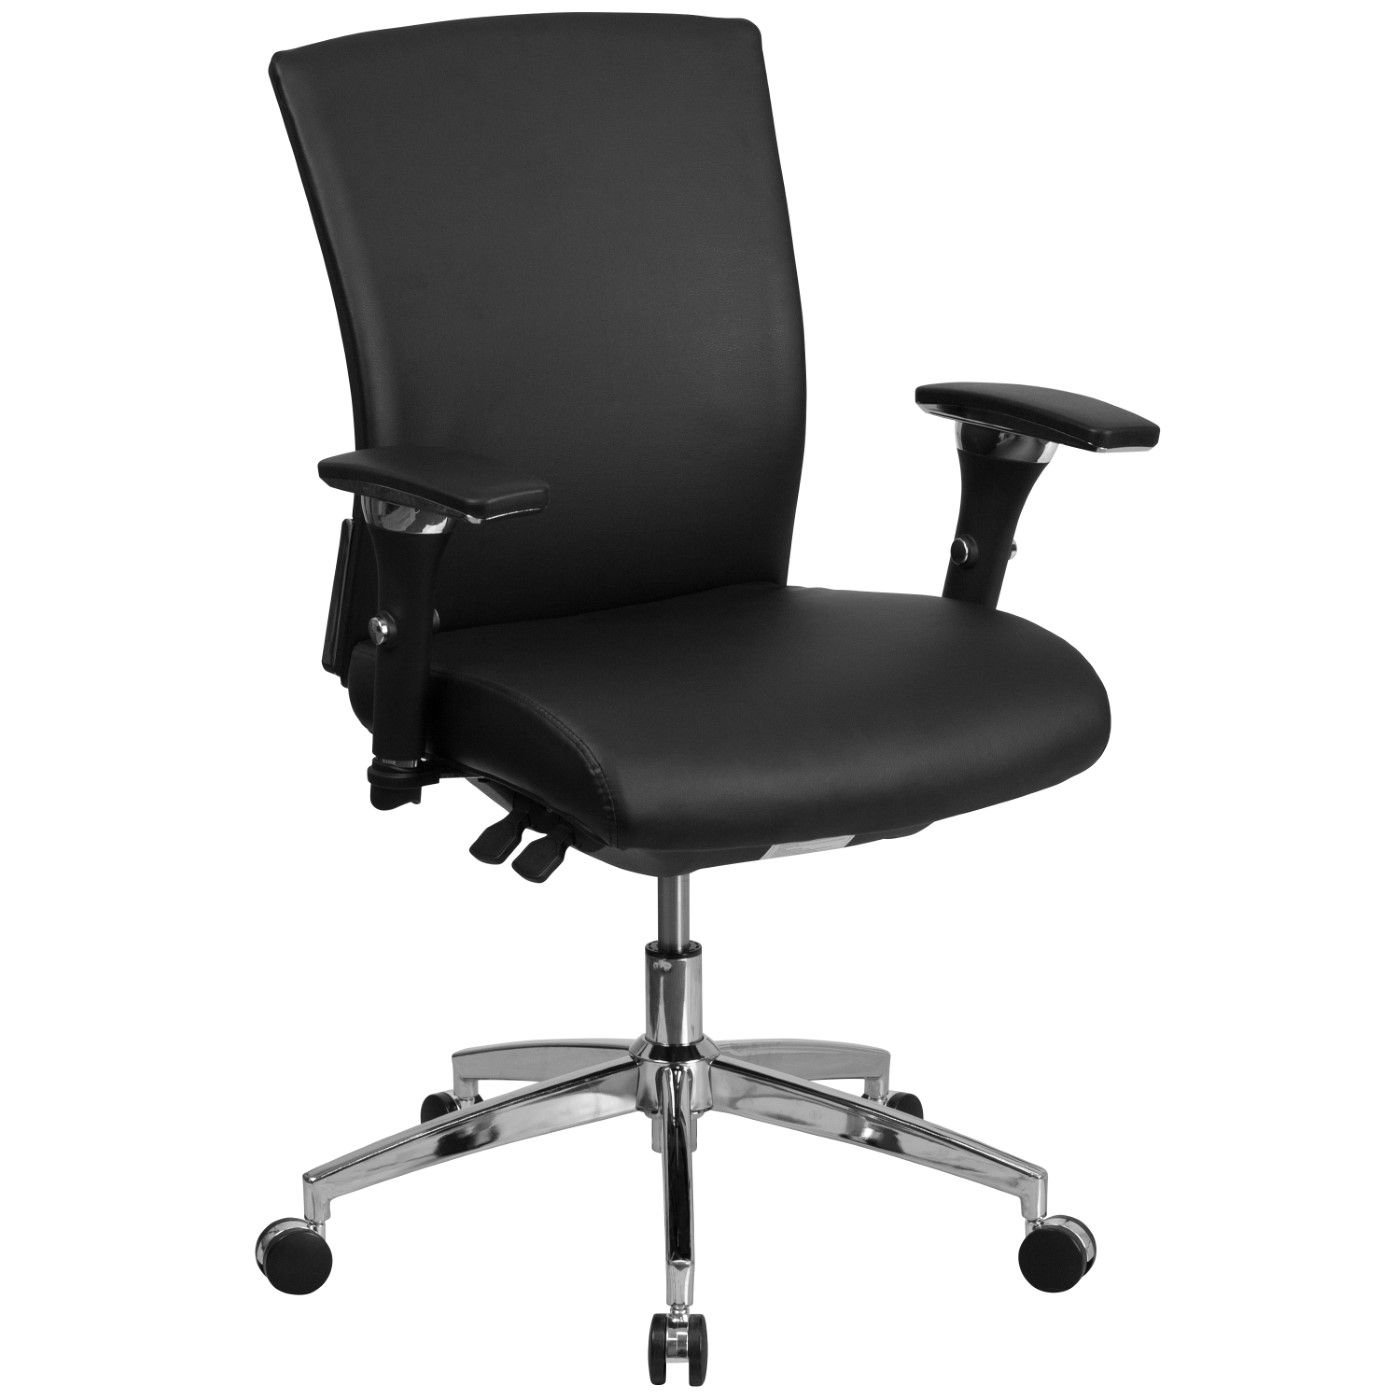 TOUGH ENOUGH Series 24/7 Intensive Use 300 lb. Rated Black LeatherSoft Multifunction Ergonomic Office Chair with Seat Slider